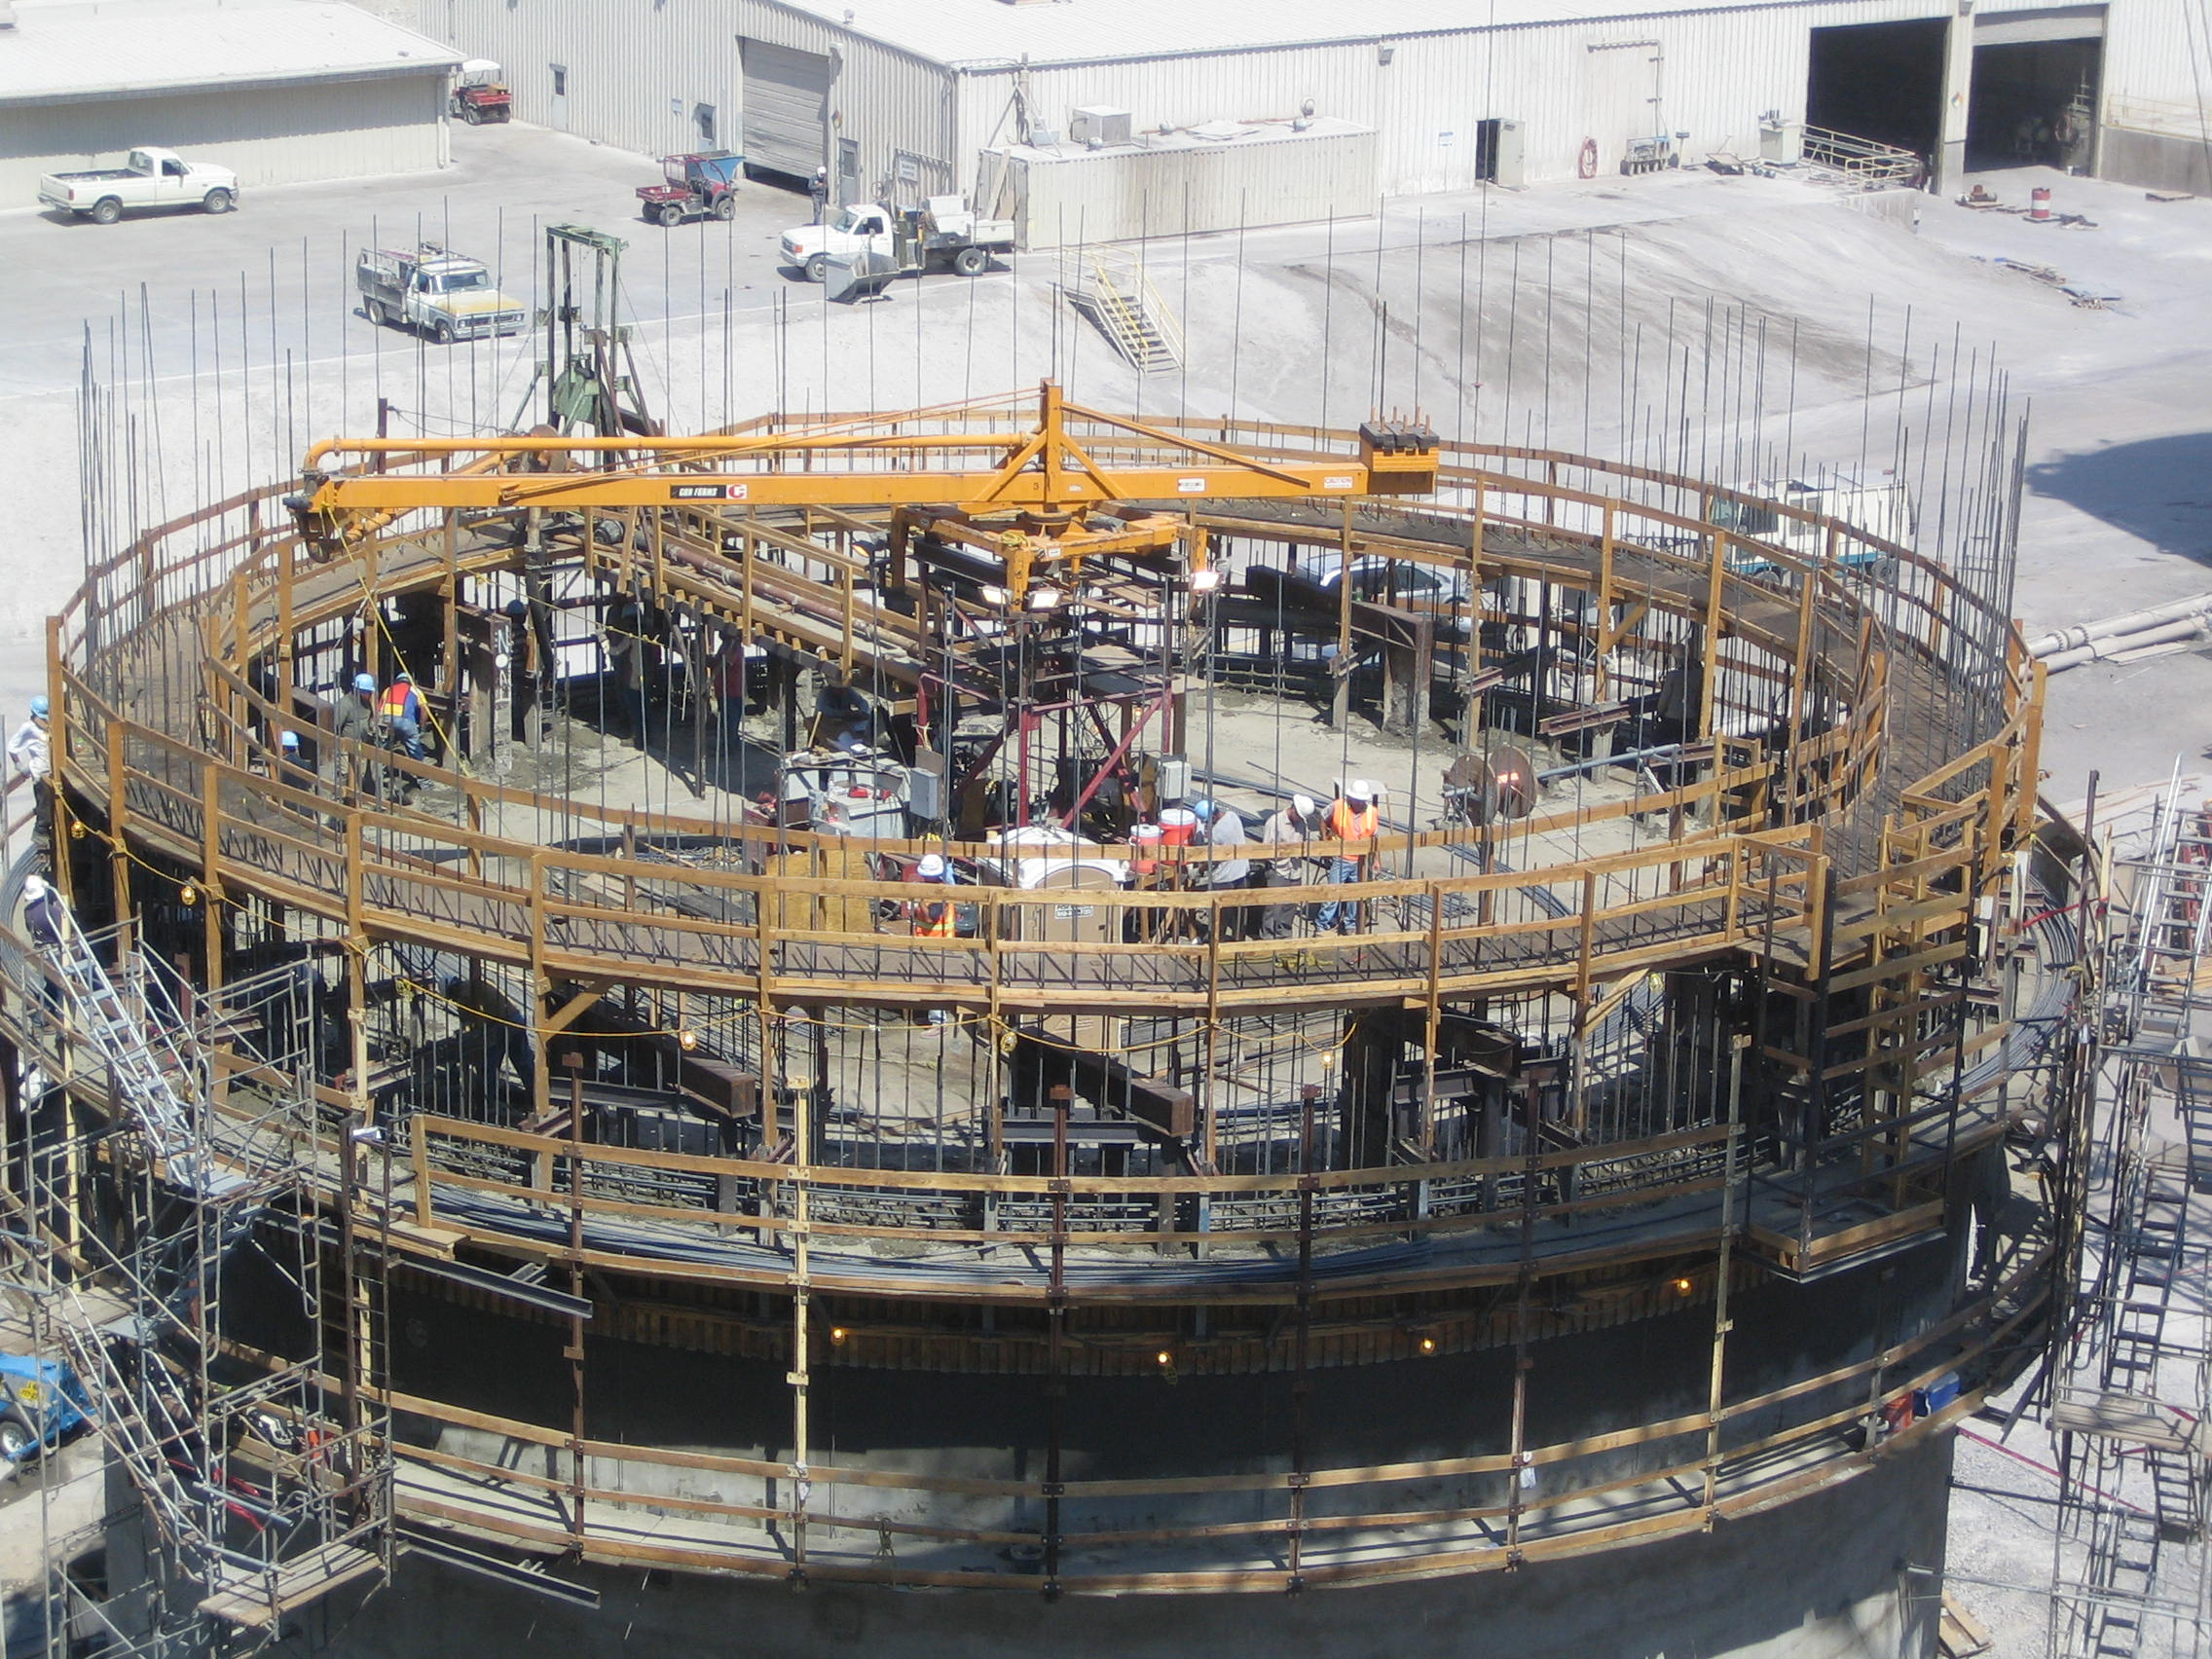 Slip-forming a concrete silo. Design and photo courtesy of Behrent Engineering Company.